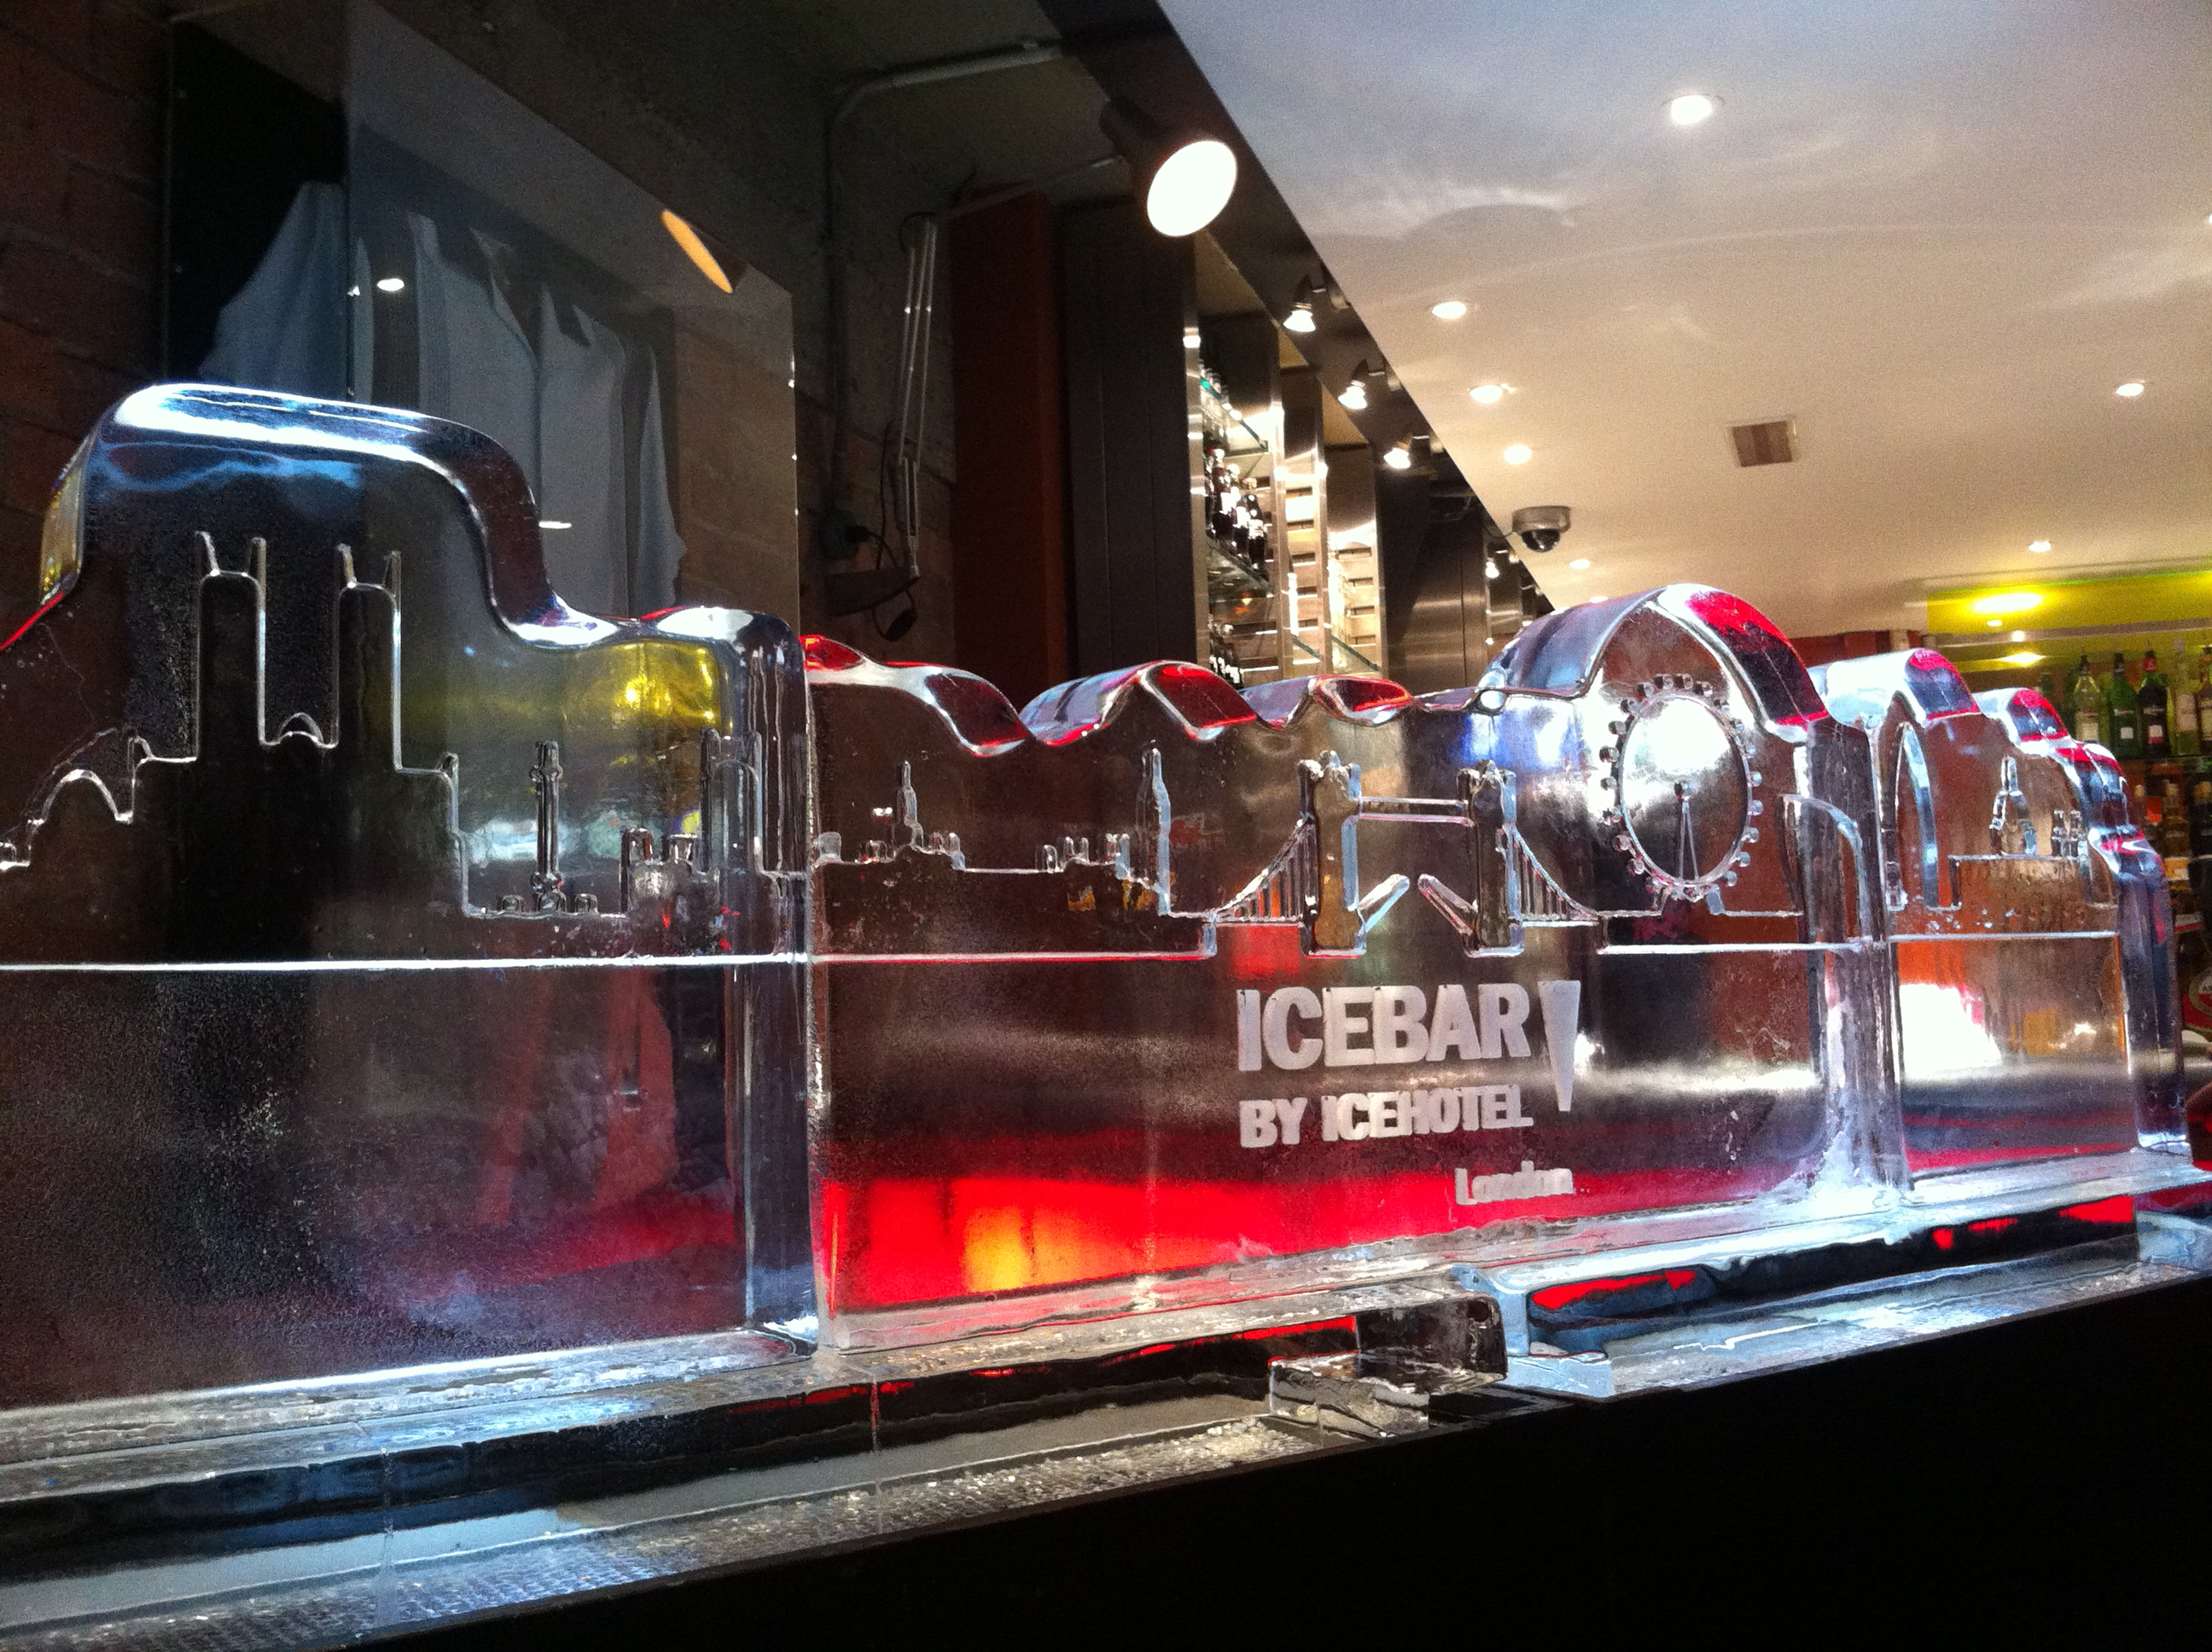 The Ice Bar logo